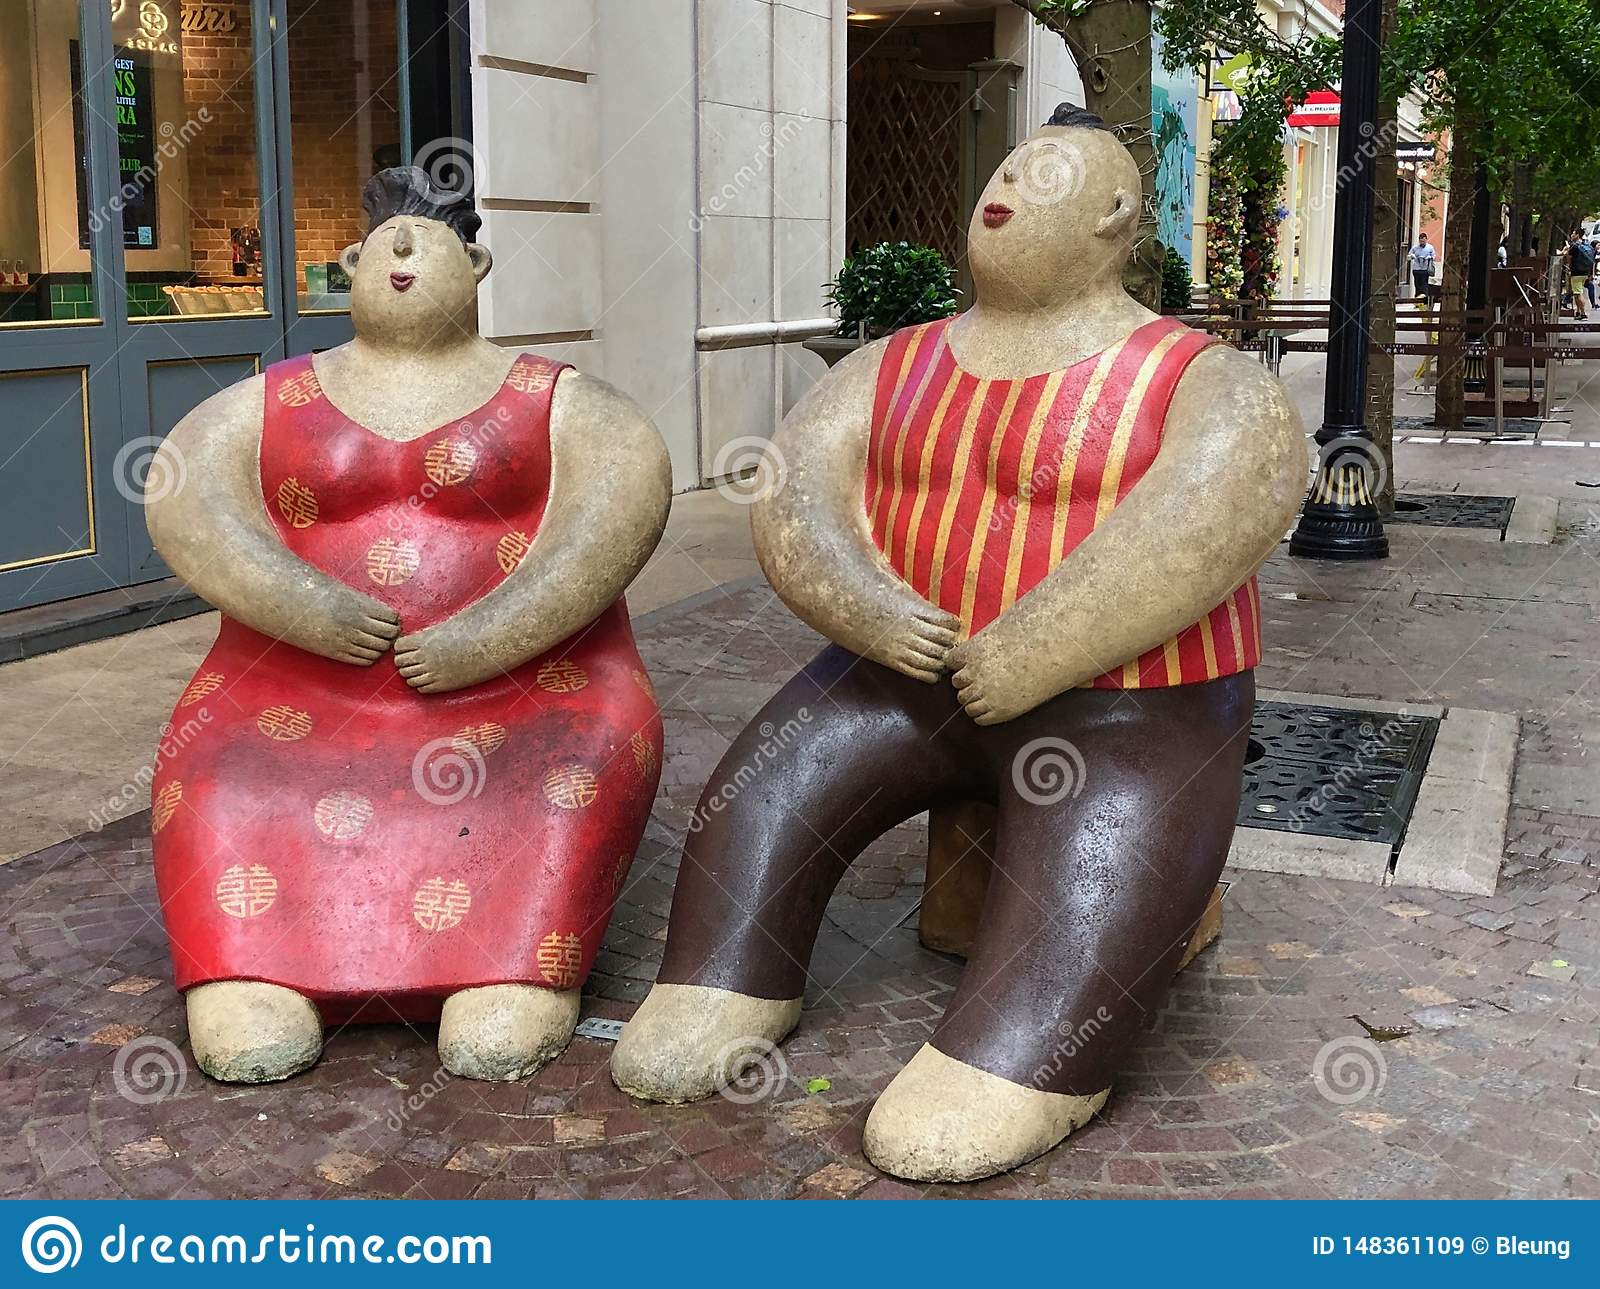 Statues of a couple enjoying sitting outdoor in Hong Kong